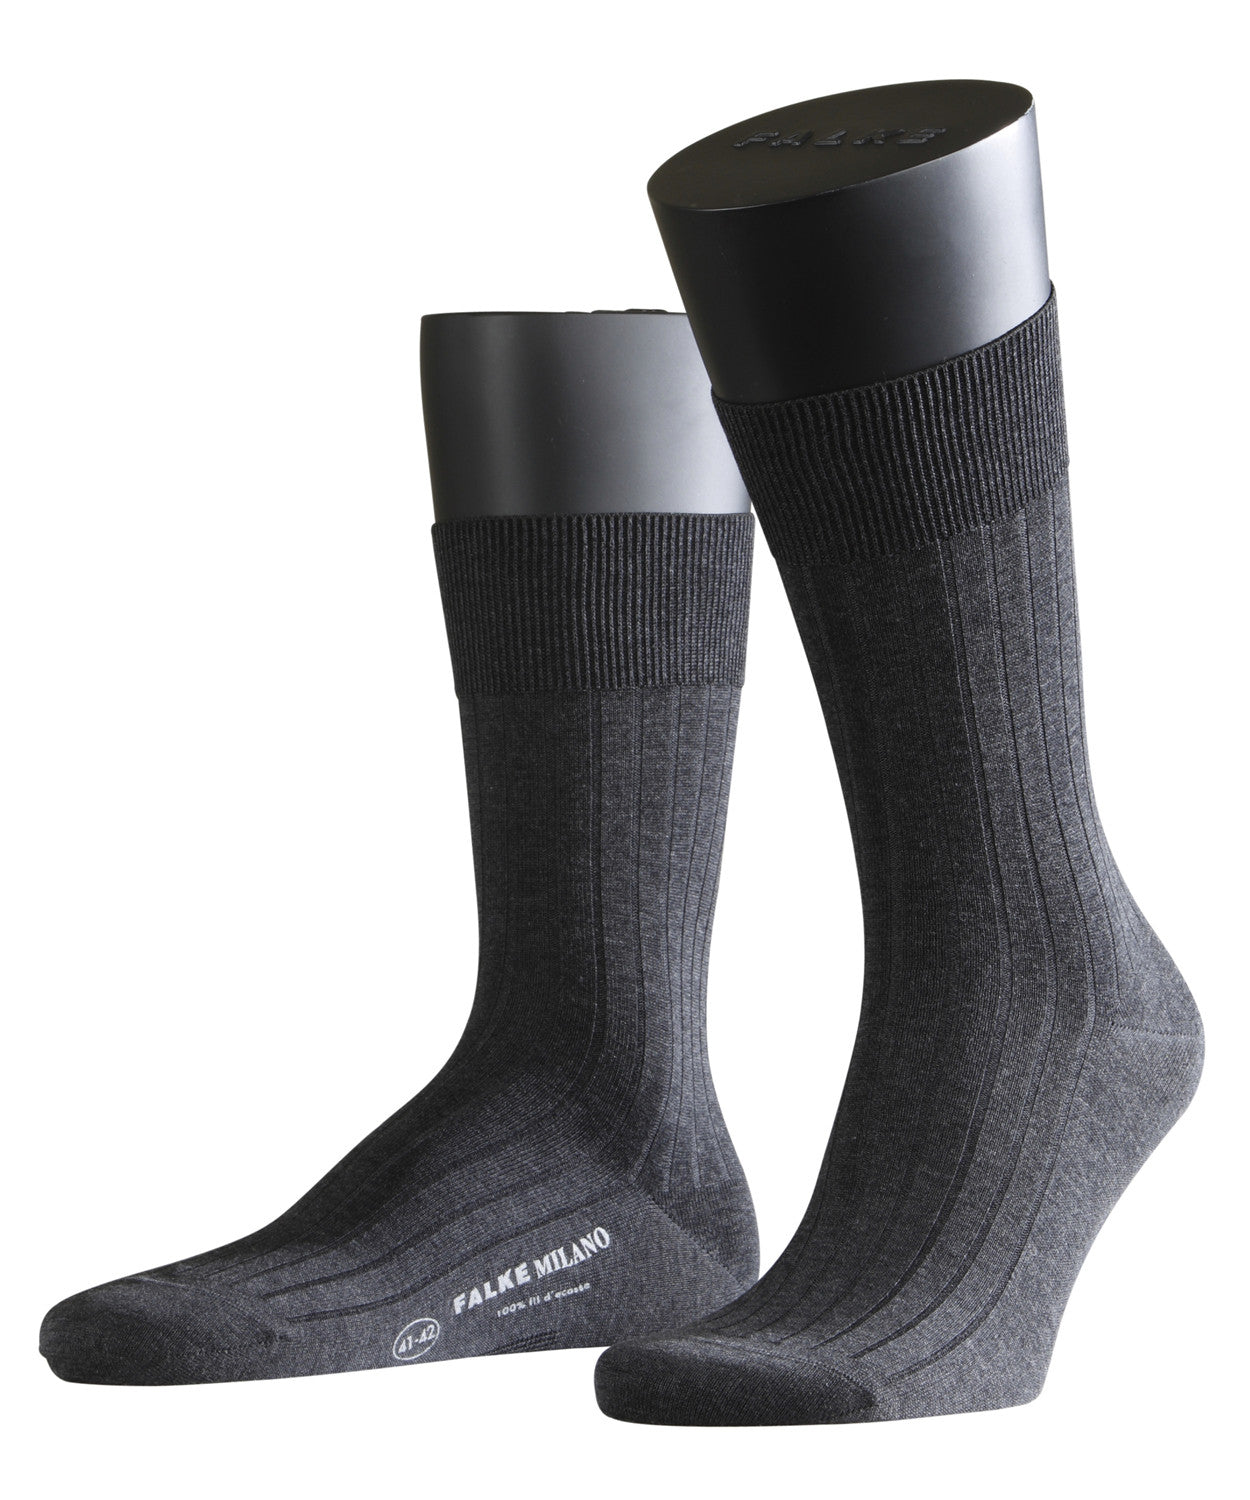 Falke Milano Mens Socks - Anthracite